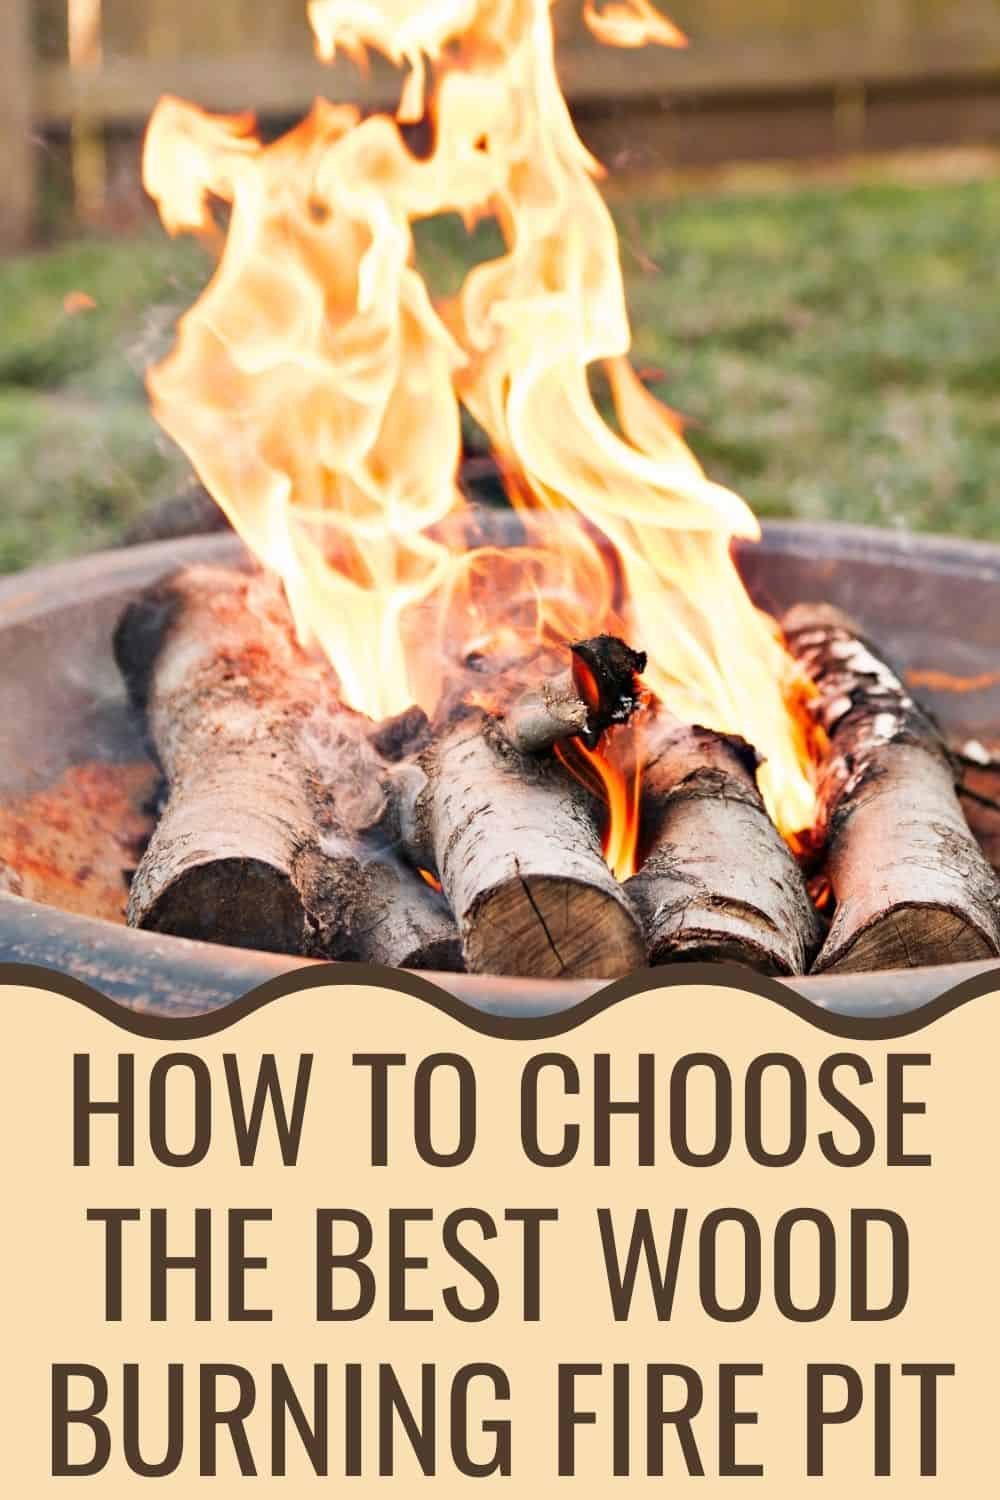 How to choose the best wood burning fire pit